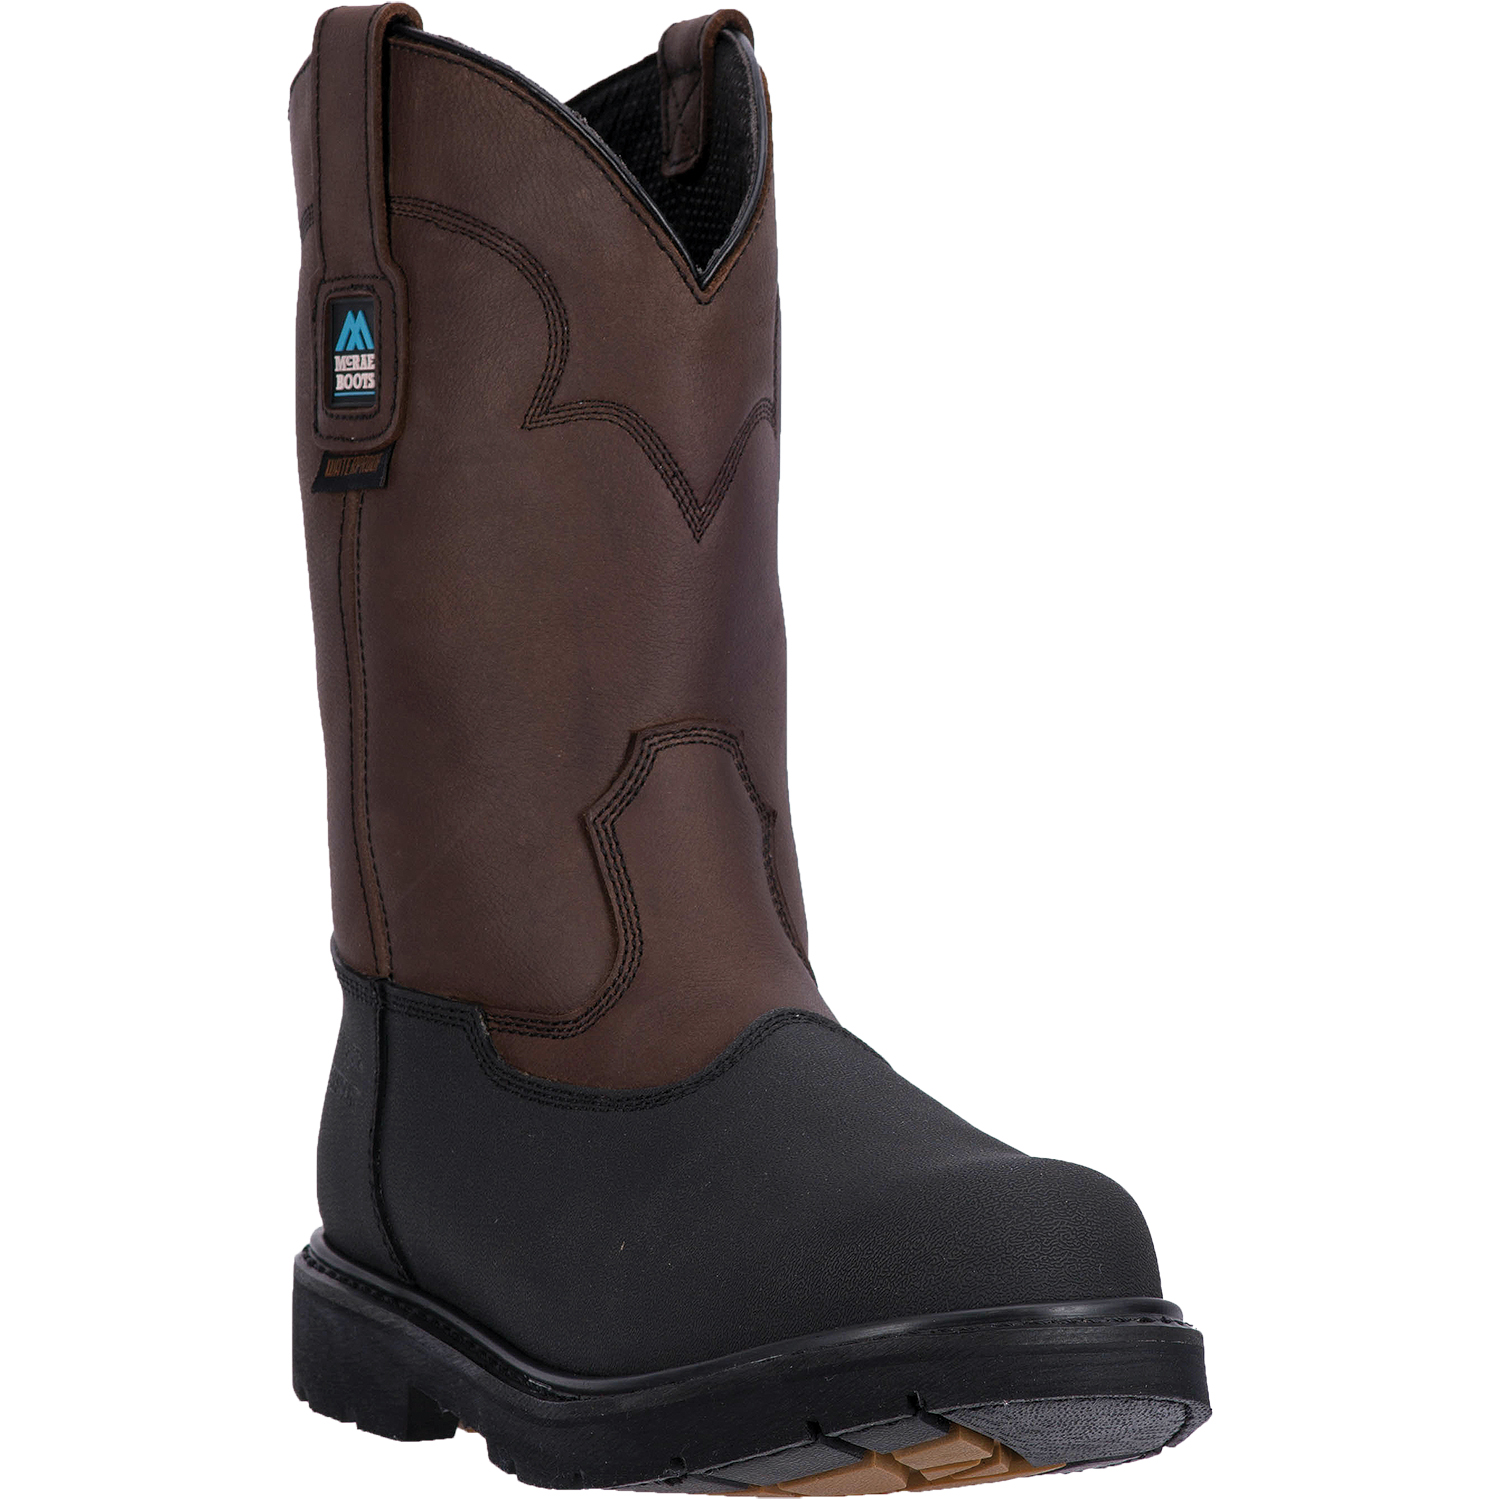 Recalled safety boot (MR85300)